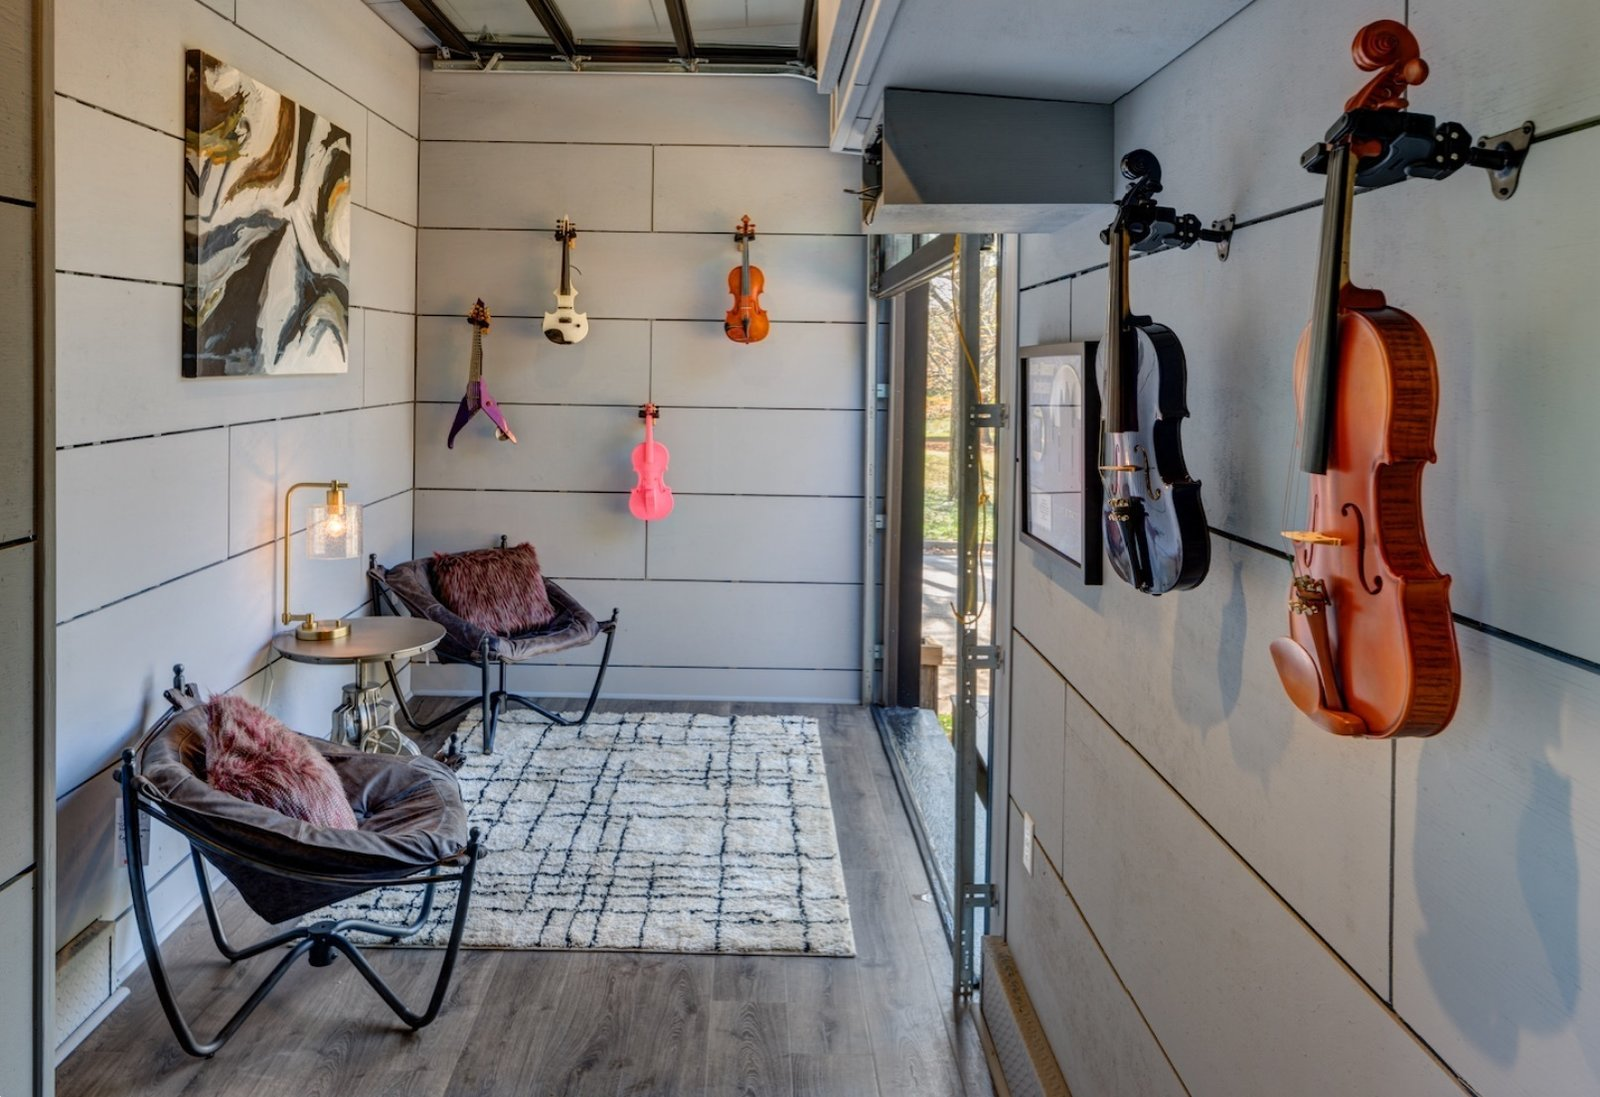 Music Room  Soundproofed with recycled denim, marine speakers on top facing the deck for the amplified sound. Tagged: Office, Craft Room, and Chair. Amplified Tiny House by Asha Mevlana